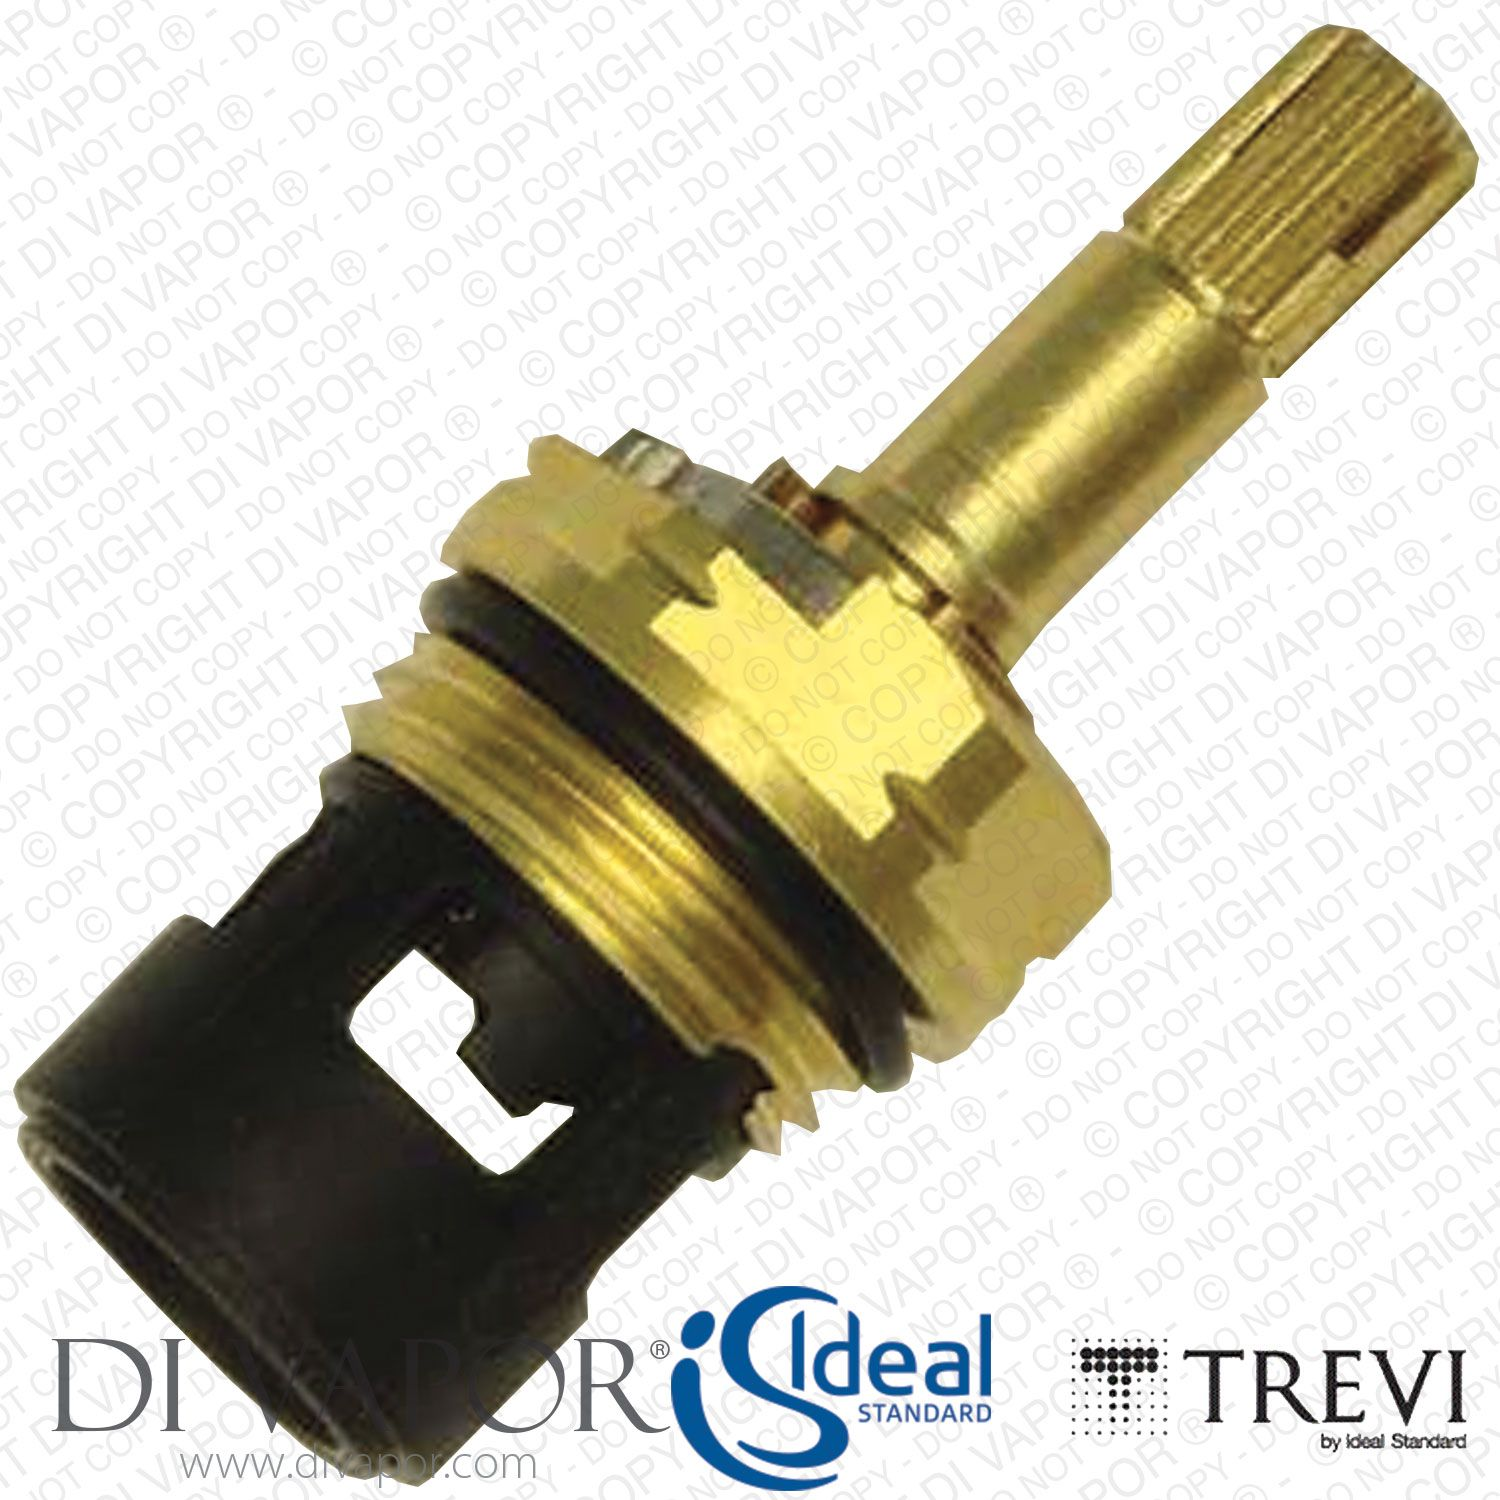 A961233nu Ideal Standard Trevi Alto Ecotherm 1 2 Flow Control Ceramic Disc Cartridge Trevi Cartridges Ceramics